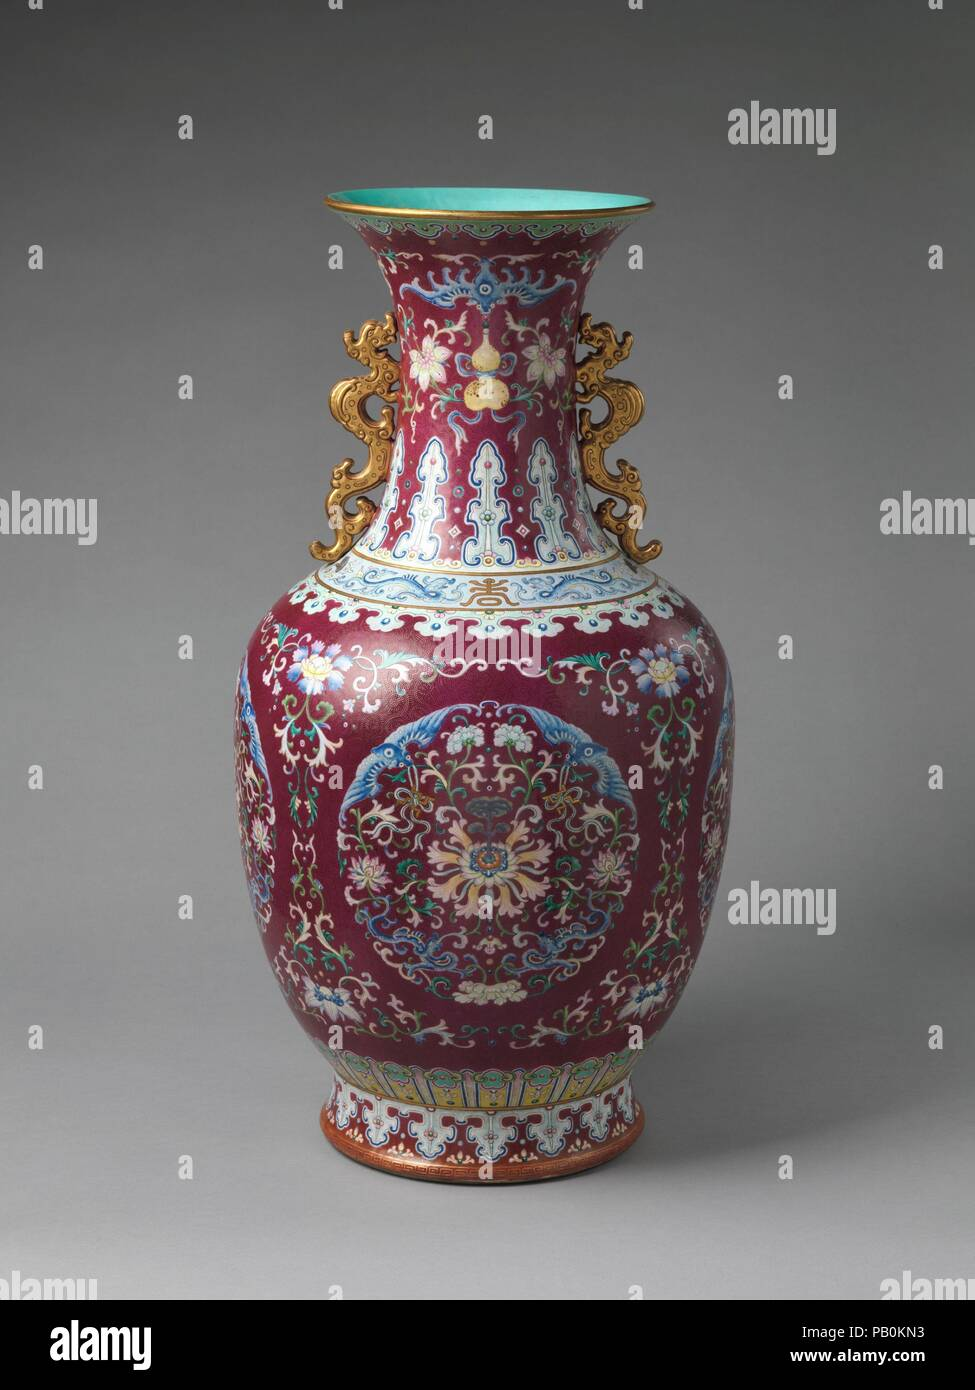 10 In Cm Vase With Floral Medallions Culture China Dimensions H 29 1